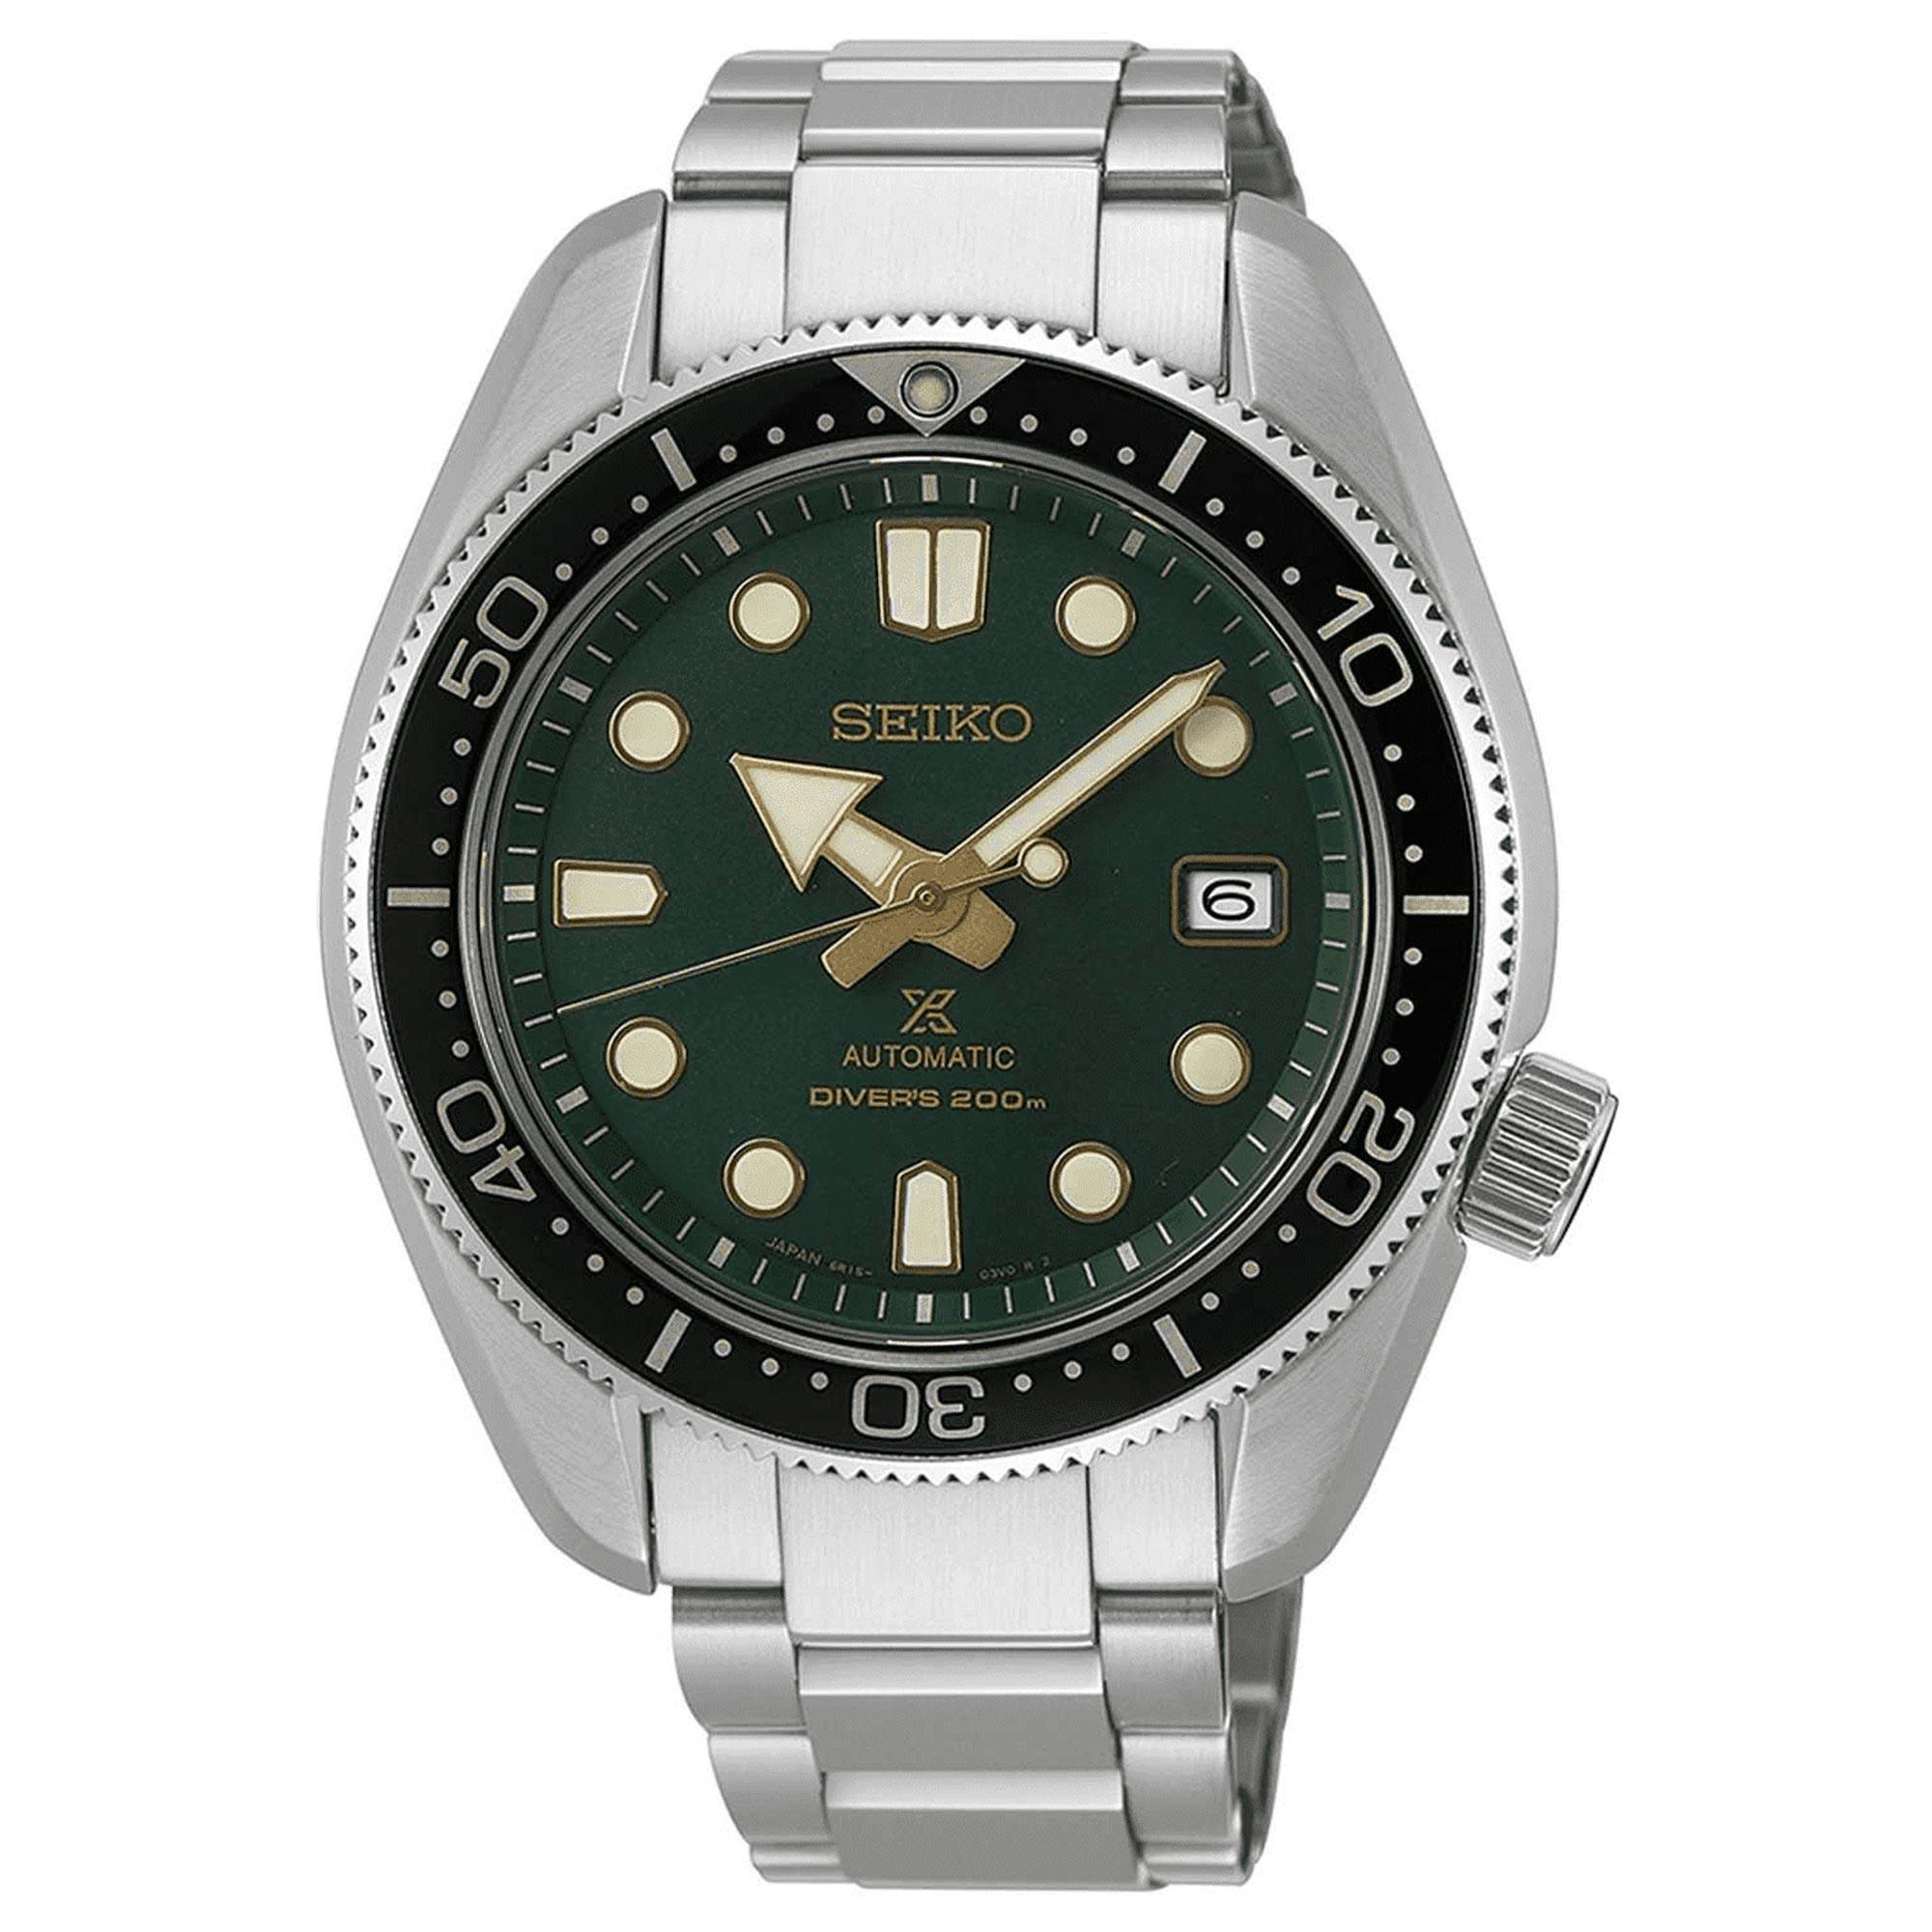 Seiko Prospex Special Edition 1968 Recreation 'Dark Green Sunset' Automatic Green Dial Silver Stainless Steel Men's Watch SPB105J1 RRP £980